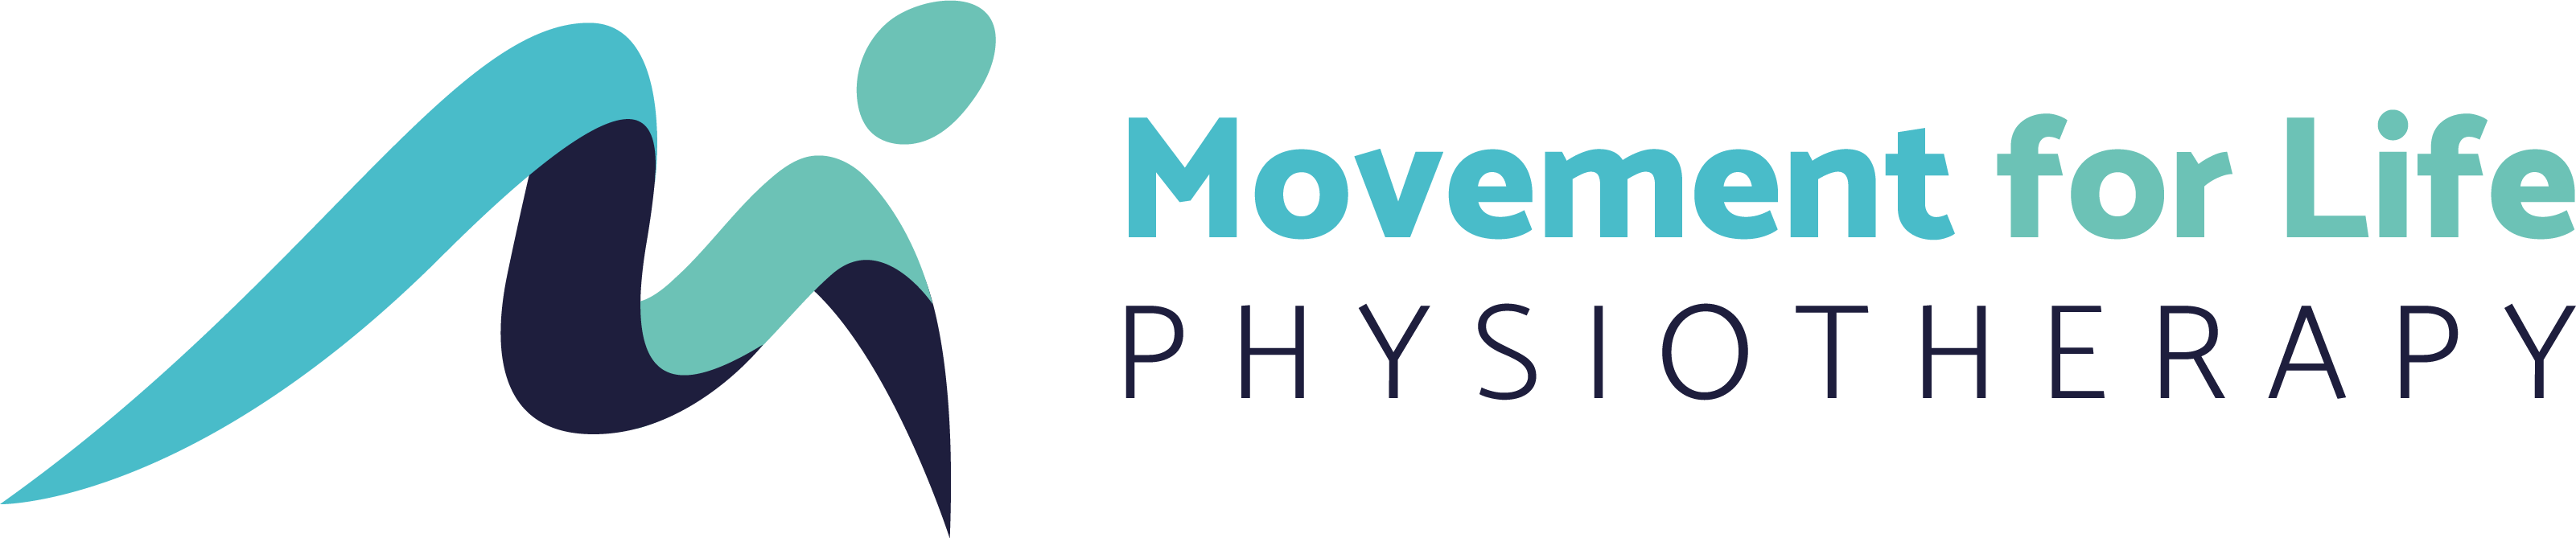 movementforlife-logo-2019-rgb-horizontal-colors.png